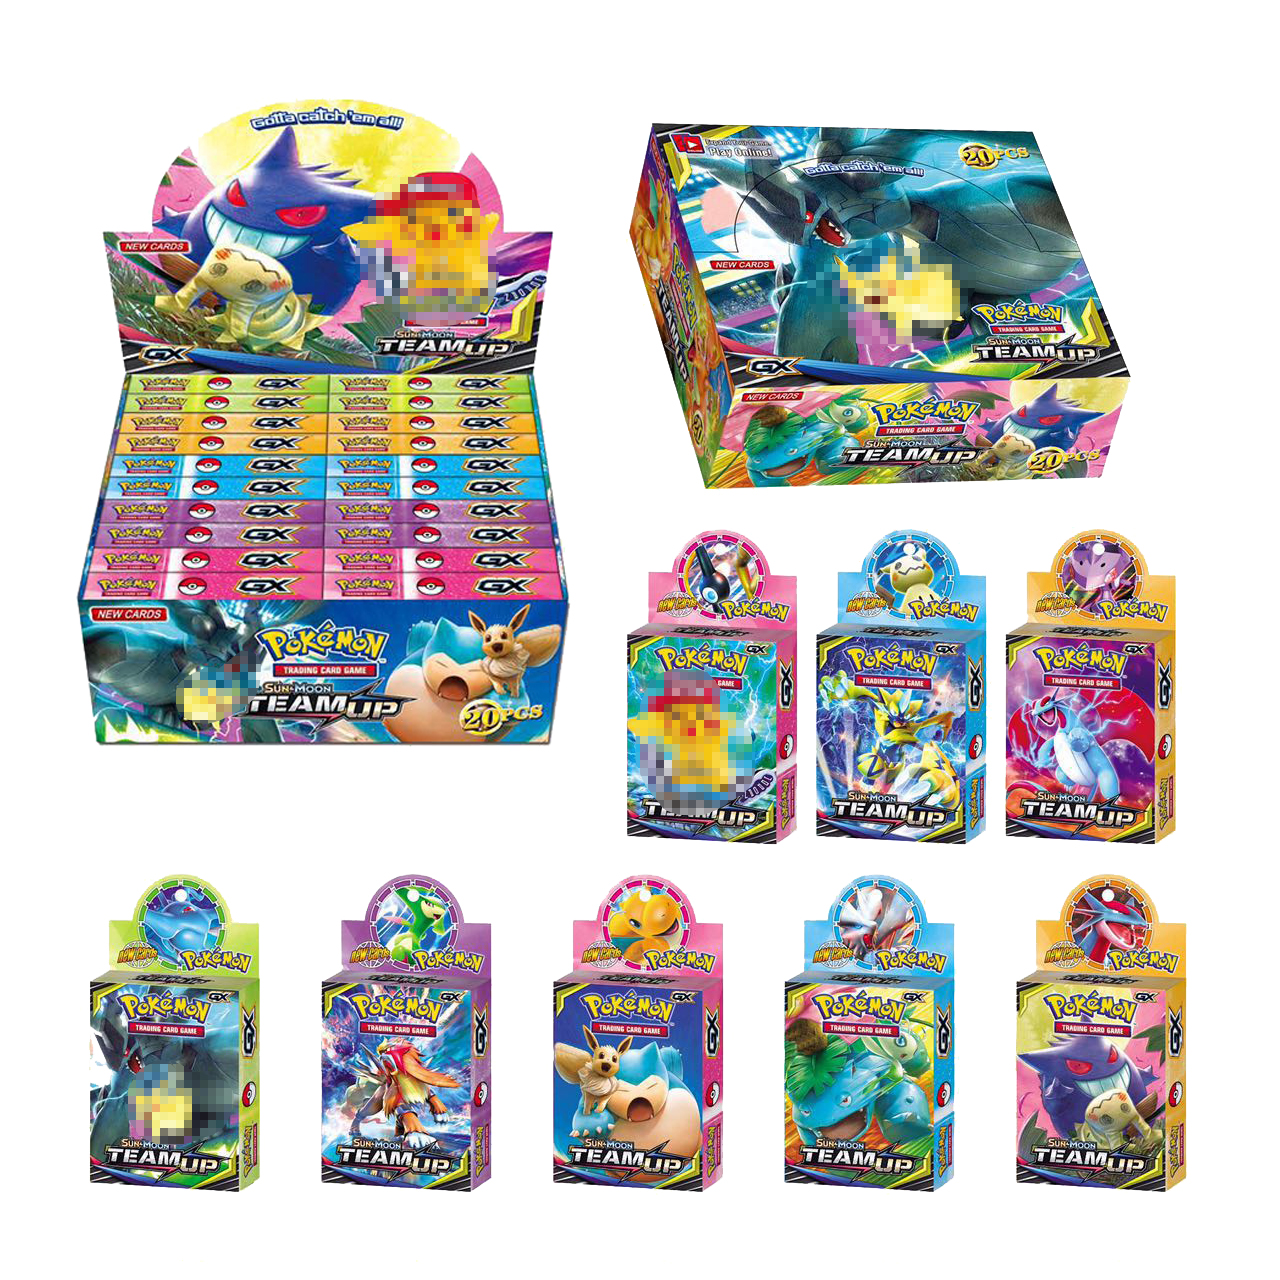 TAKARA TOMY Pokemon 33PCS GX EX MEGA Cover Flash Card 3D Version SWORD SHIELD SUN&MOON Card Collectible Gift Kids Toy